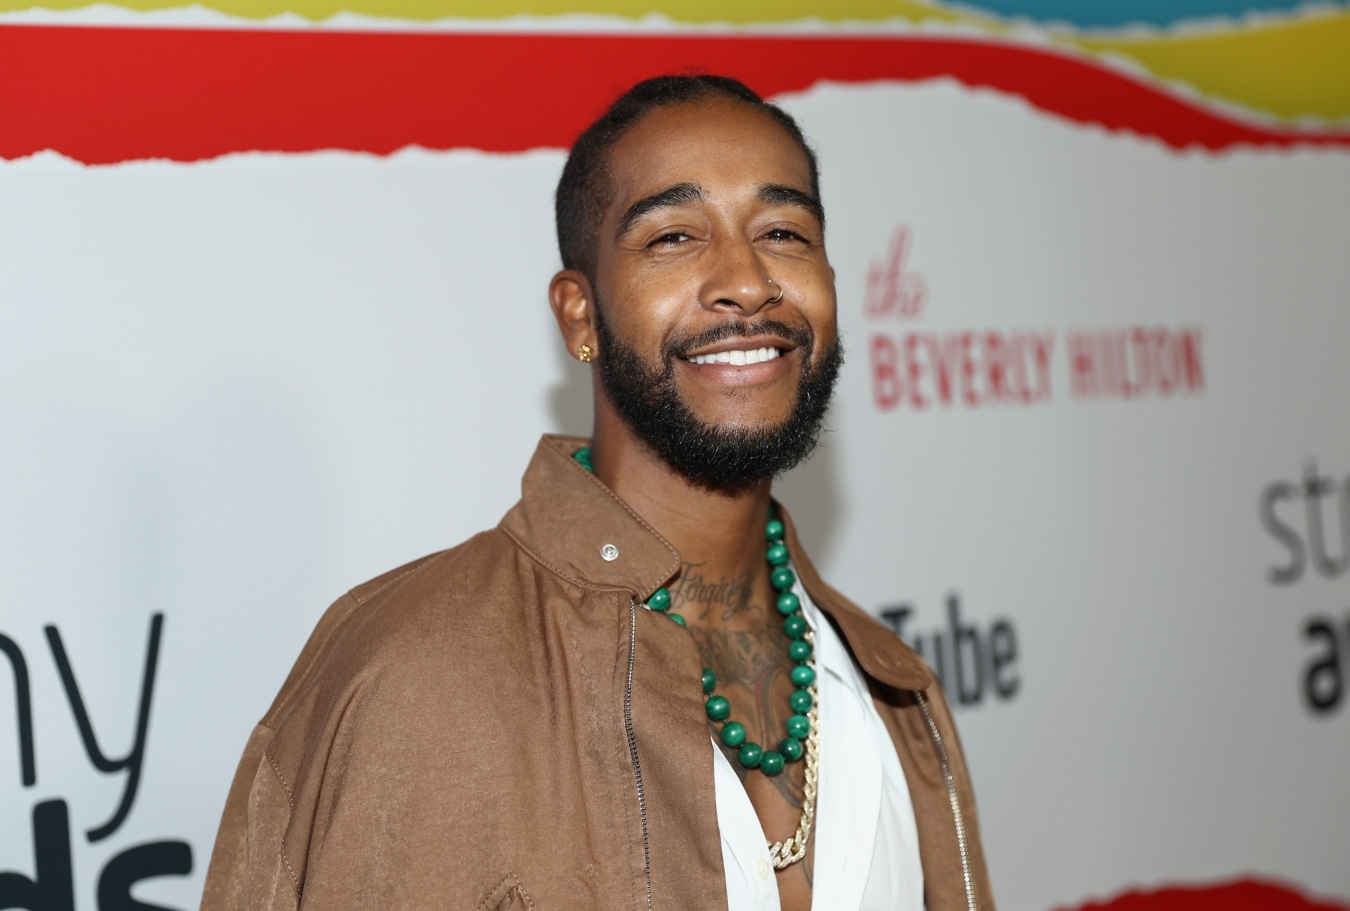 734075c10b5 Just Jokes  Omarion says there s no dress code to attend upcoming B2K  reunion concert